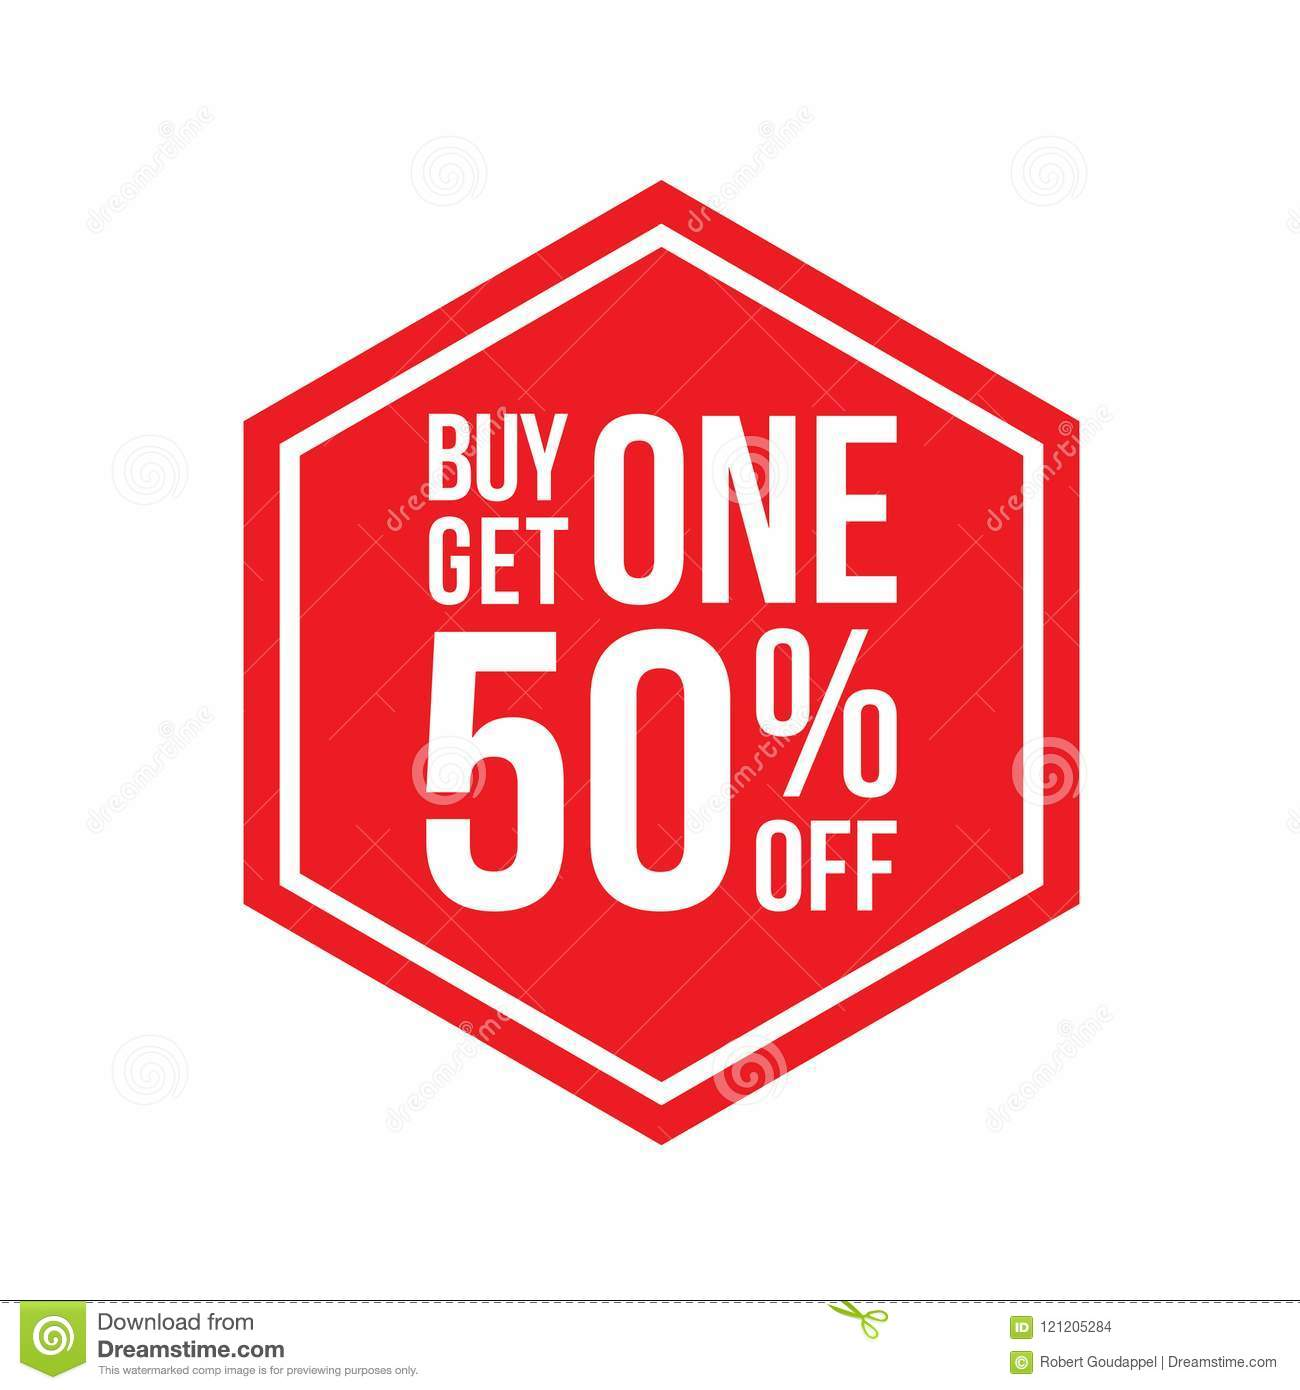 b337431299 Buy One Get One 50% Off Sign Hexagon Stock Vector - Illustration of ...